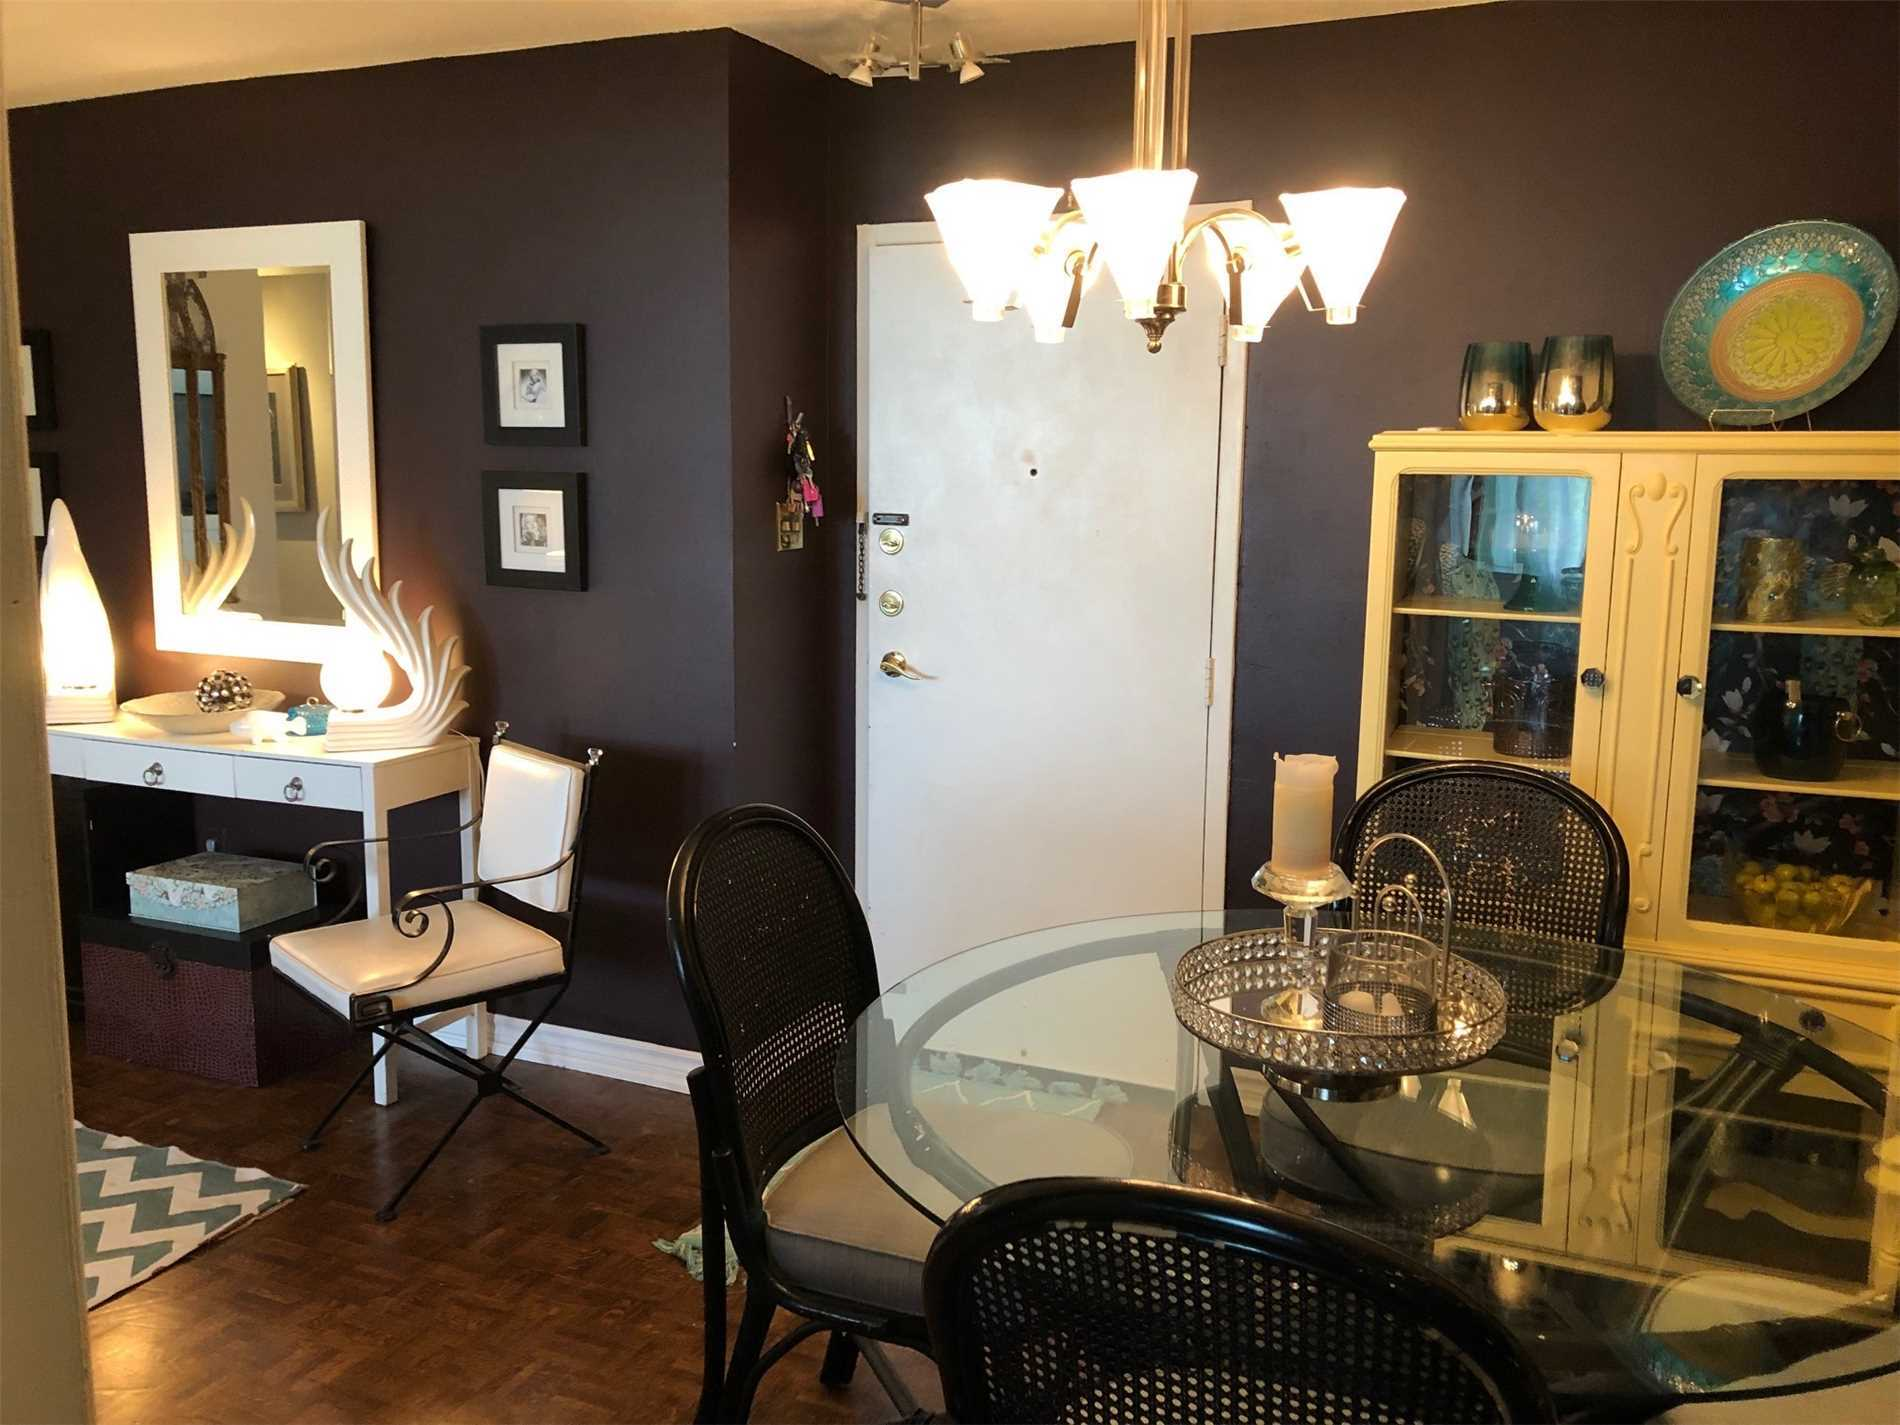 #702 - 966 Inverhouse Dr, Mississauga W4513793